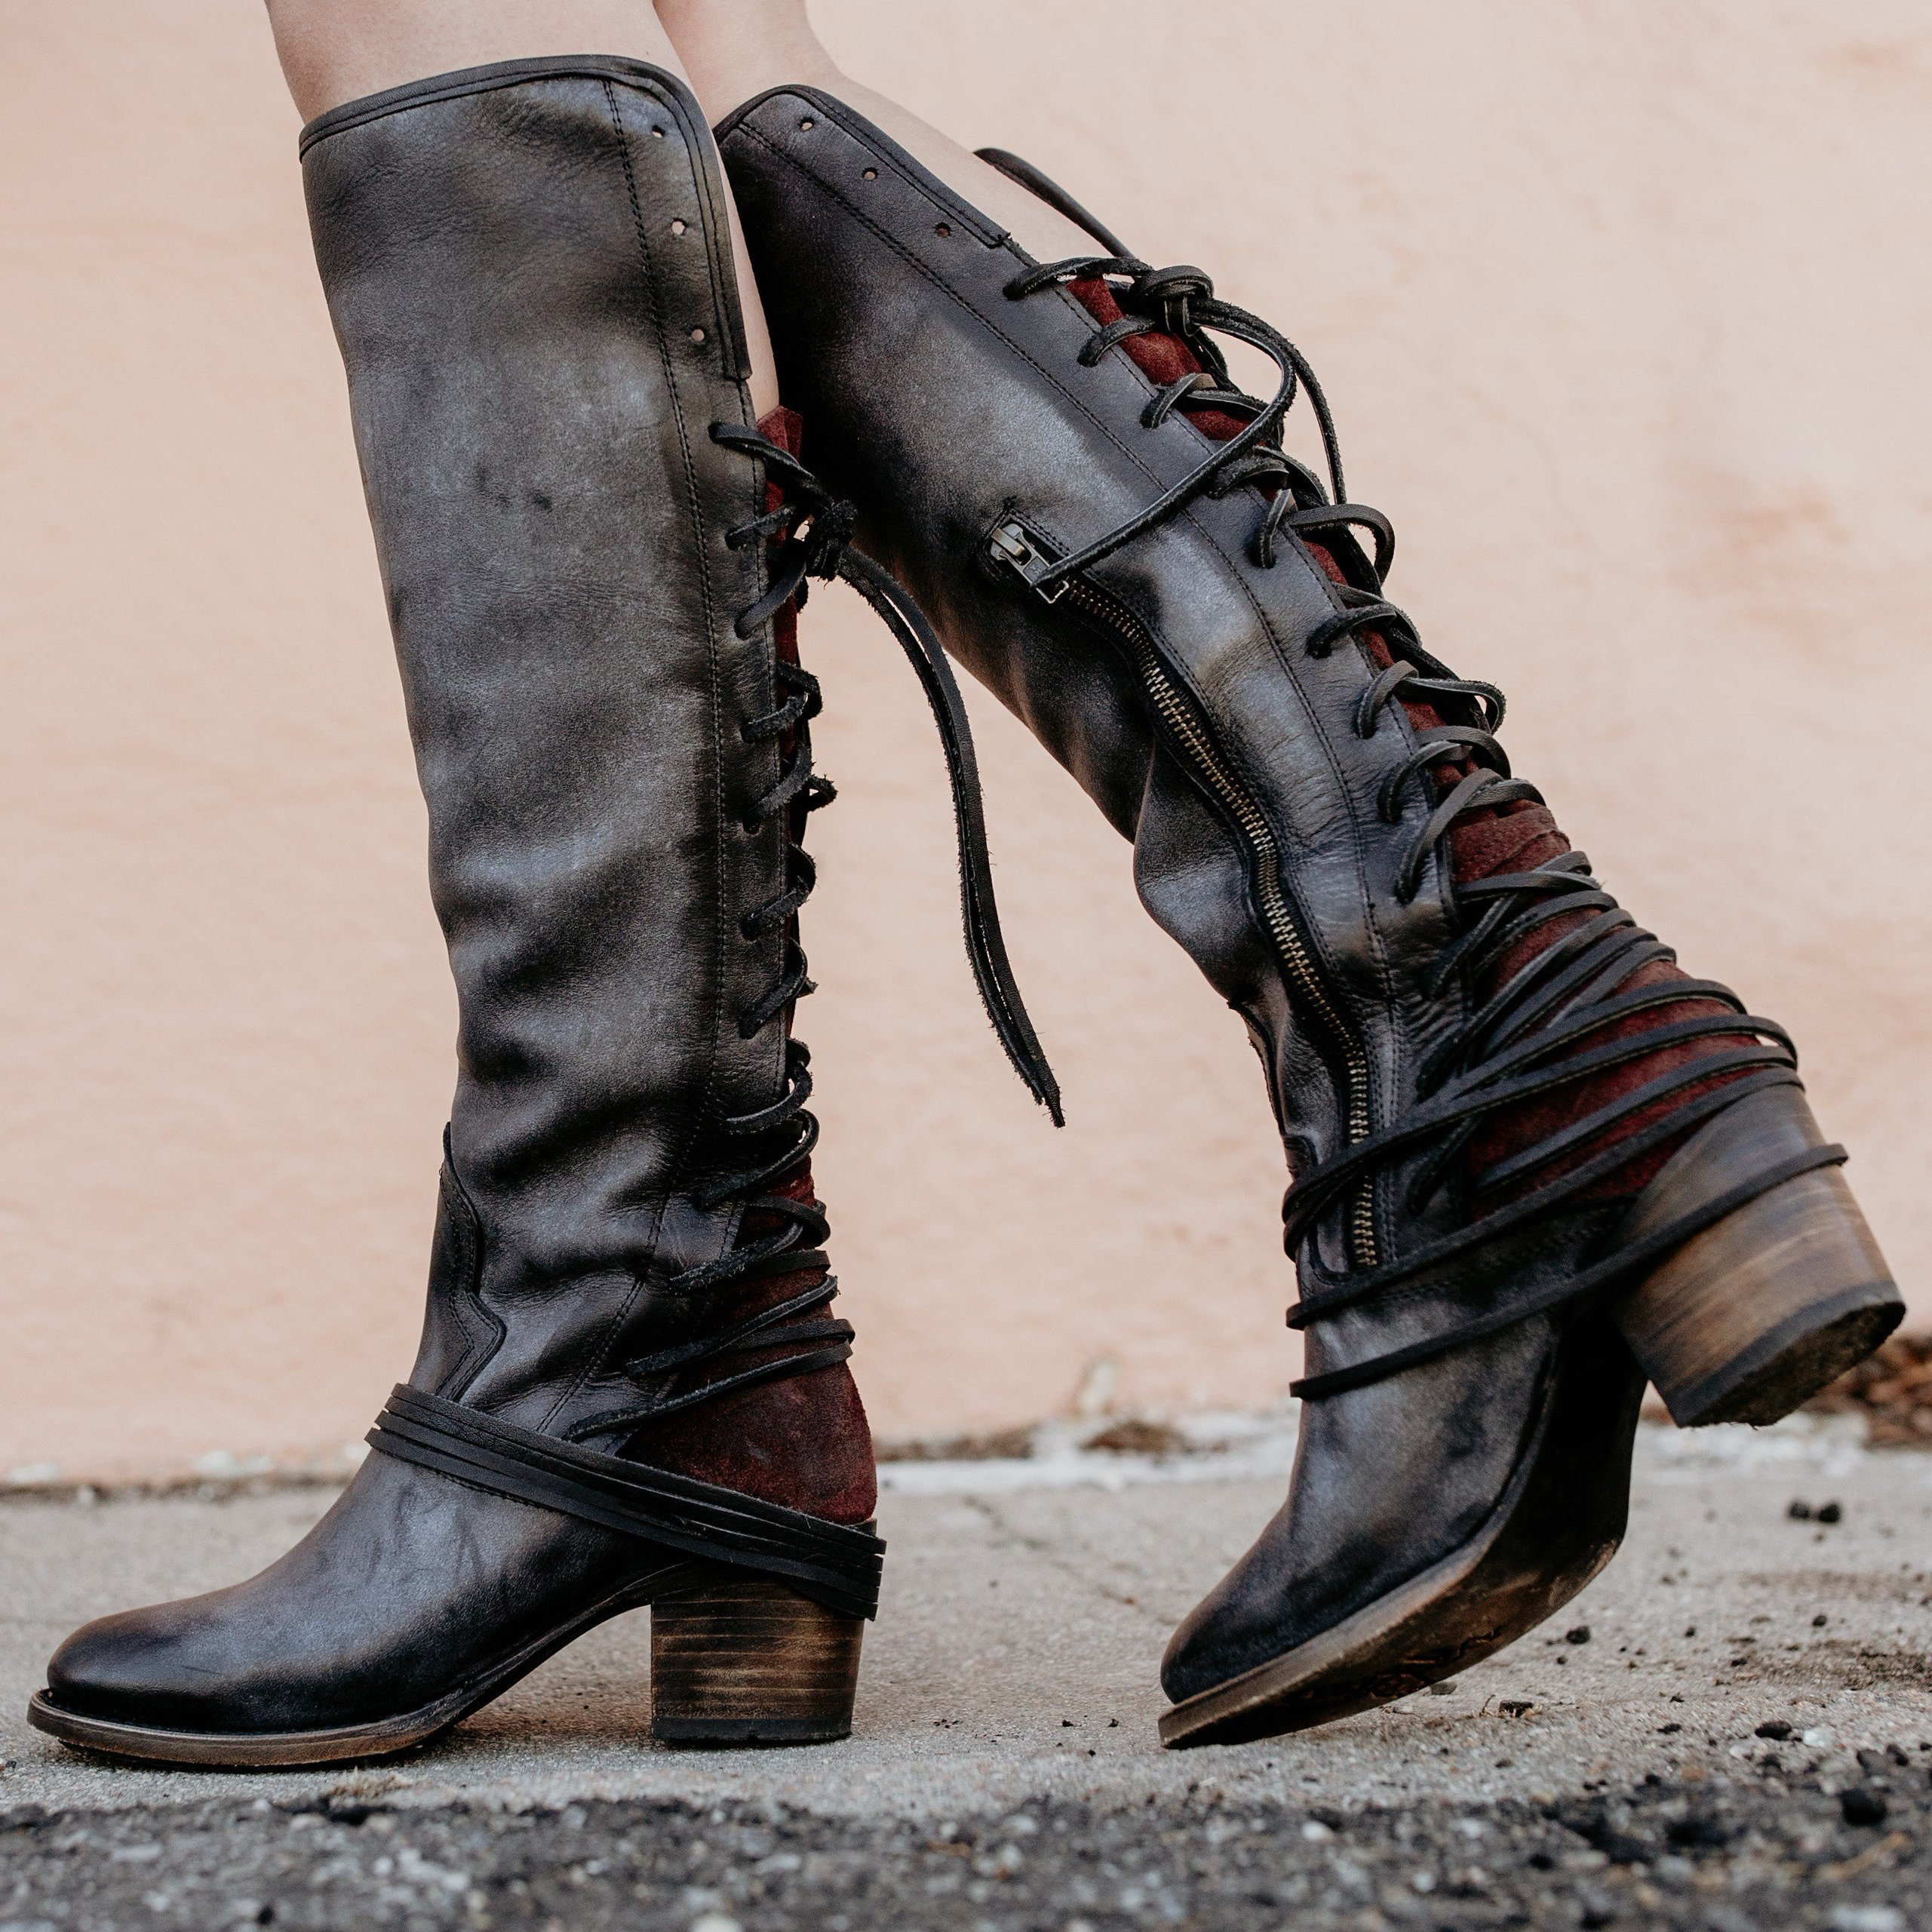 9953c58db78 Shop the COAL boot at FreebirdStores.com. Official site for FREEBIRD by  Steven. Exclusive Handcrafted Boots   Booties. Free 2 Day Shipping   Free  Returns